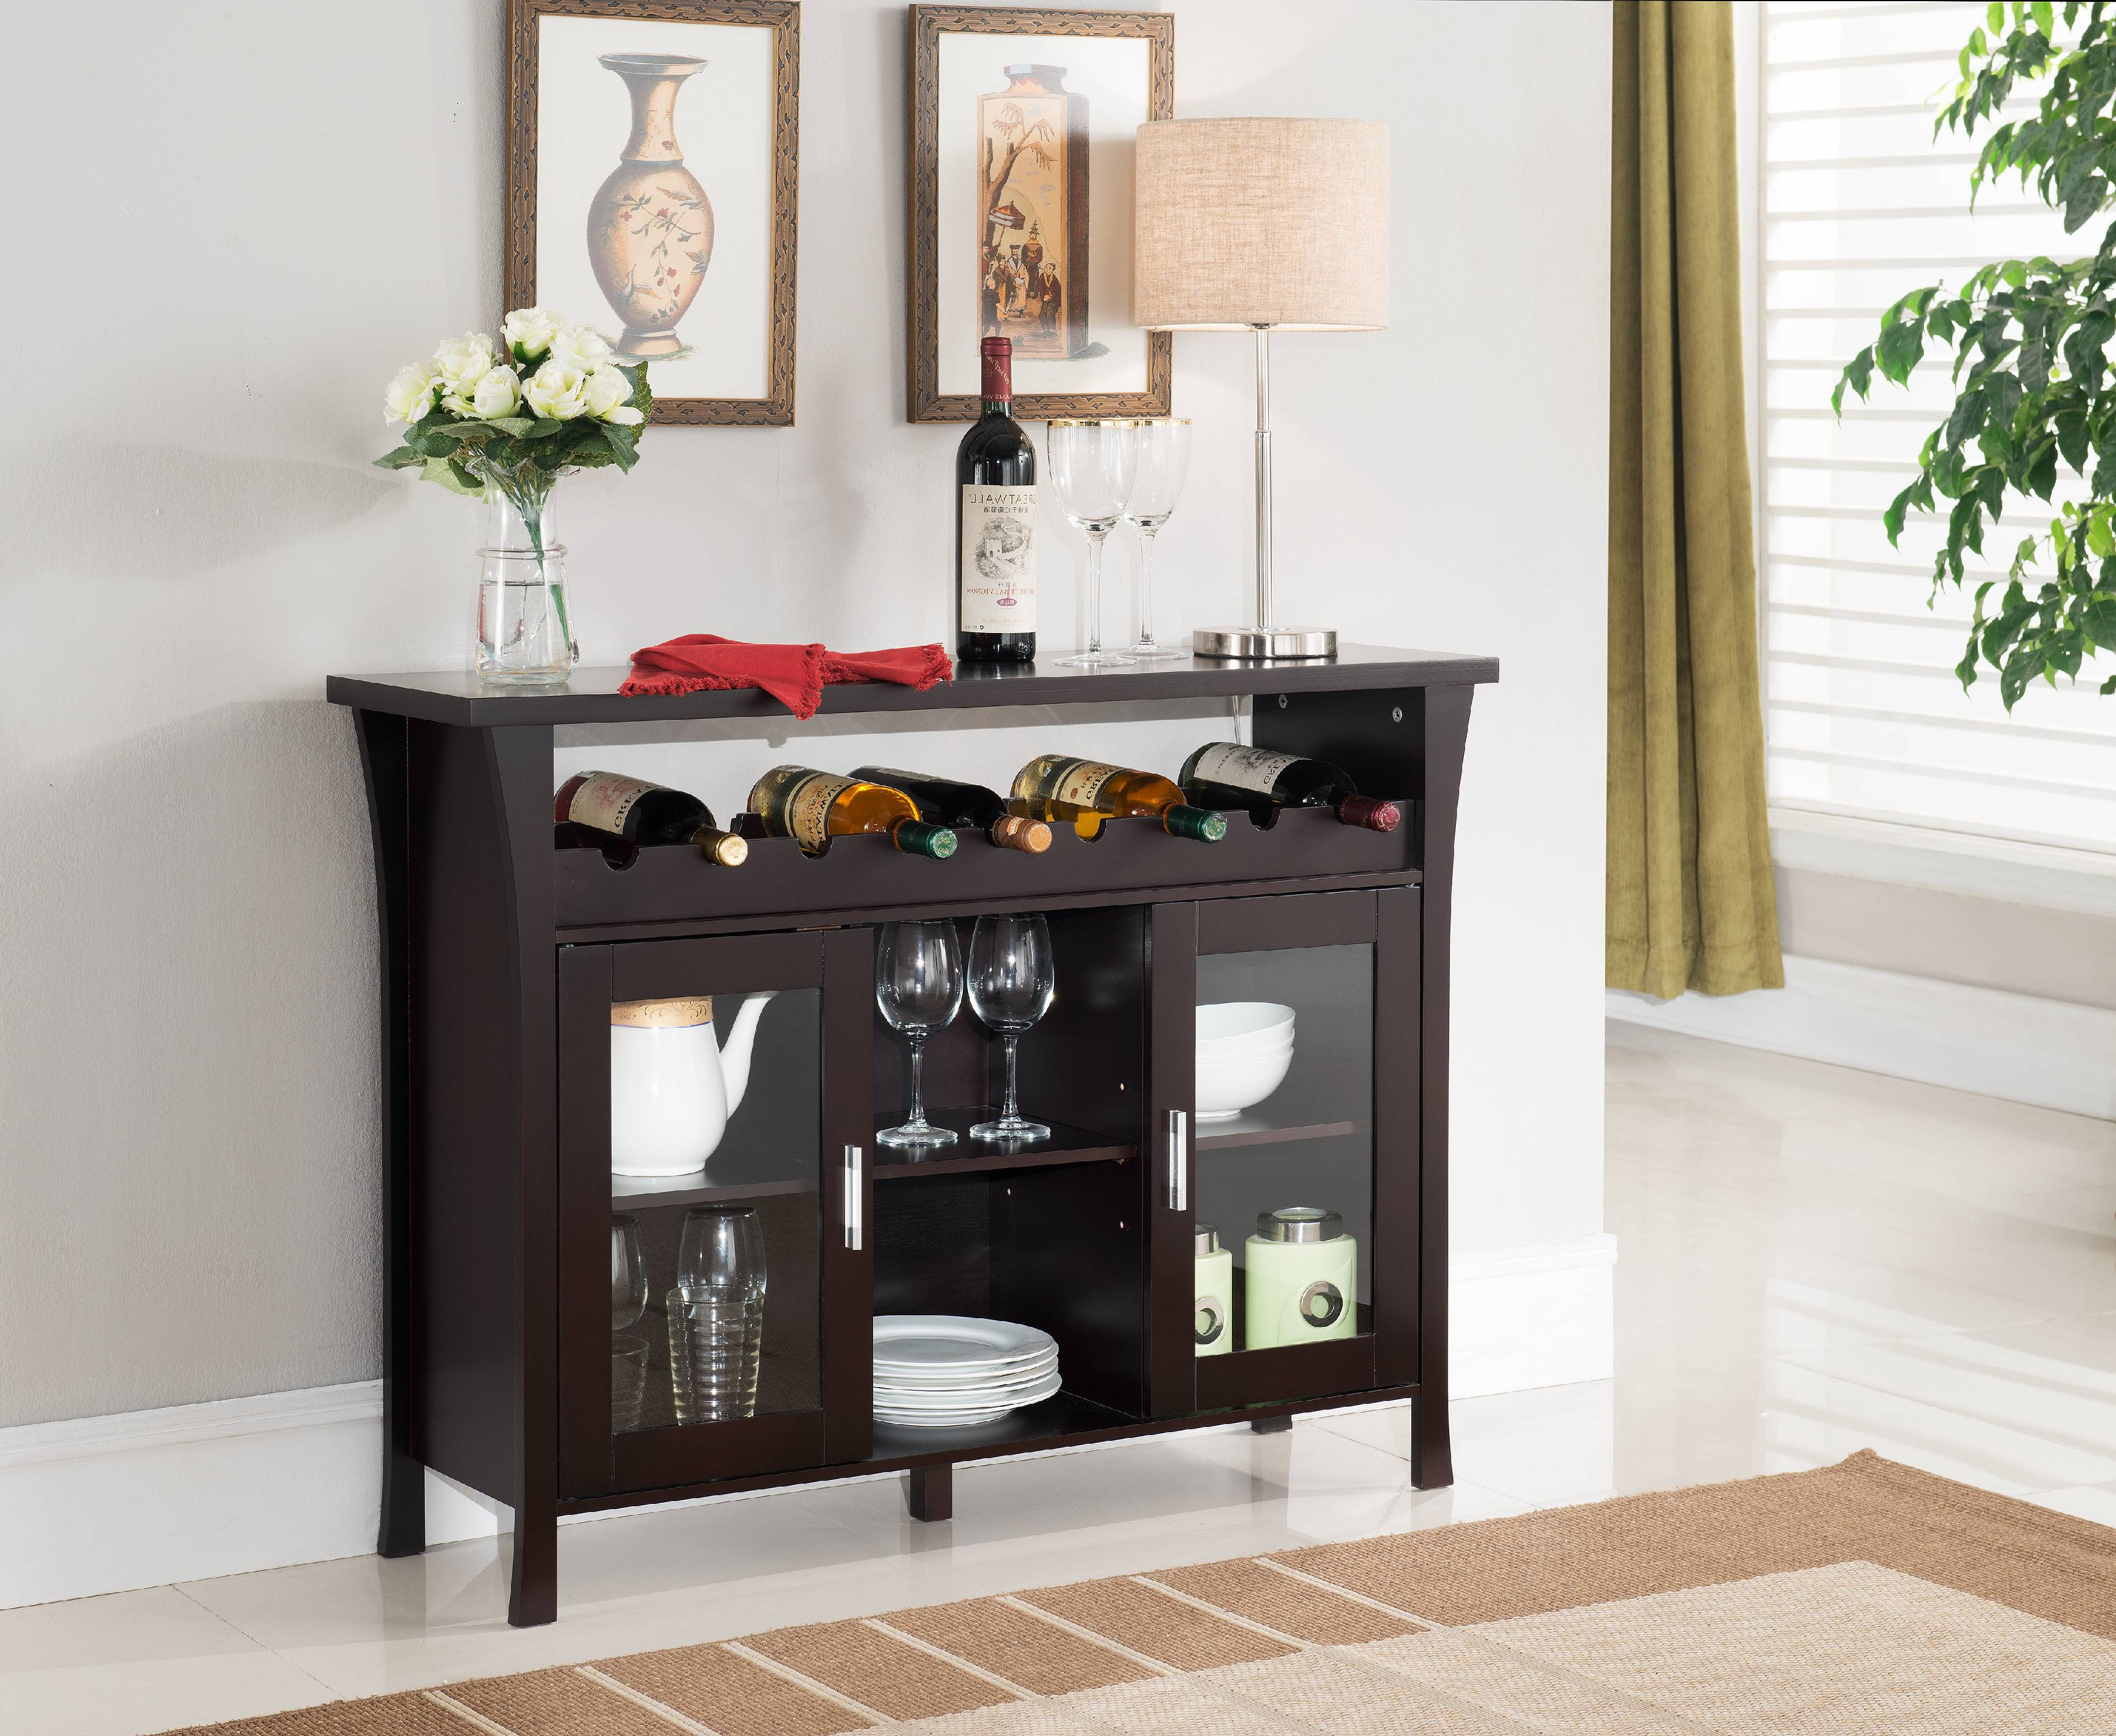 Richard Espresso Wood Contemporary Wine Rack Breakfront Sideboard Display  Console Table With Glass Storage Doors U0026